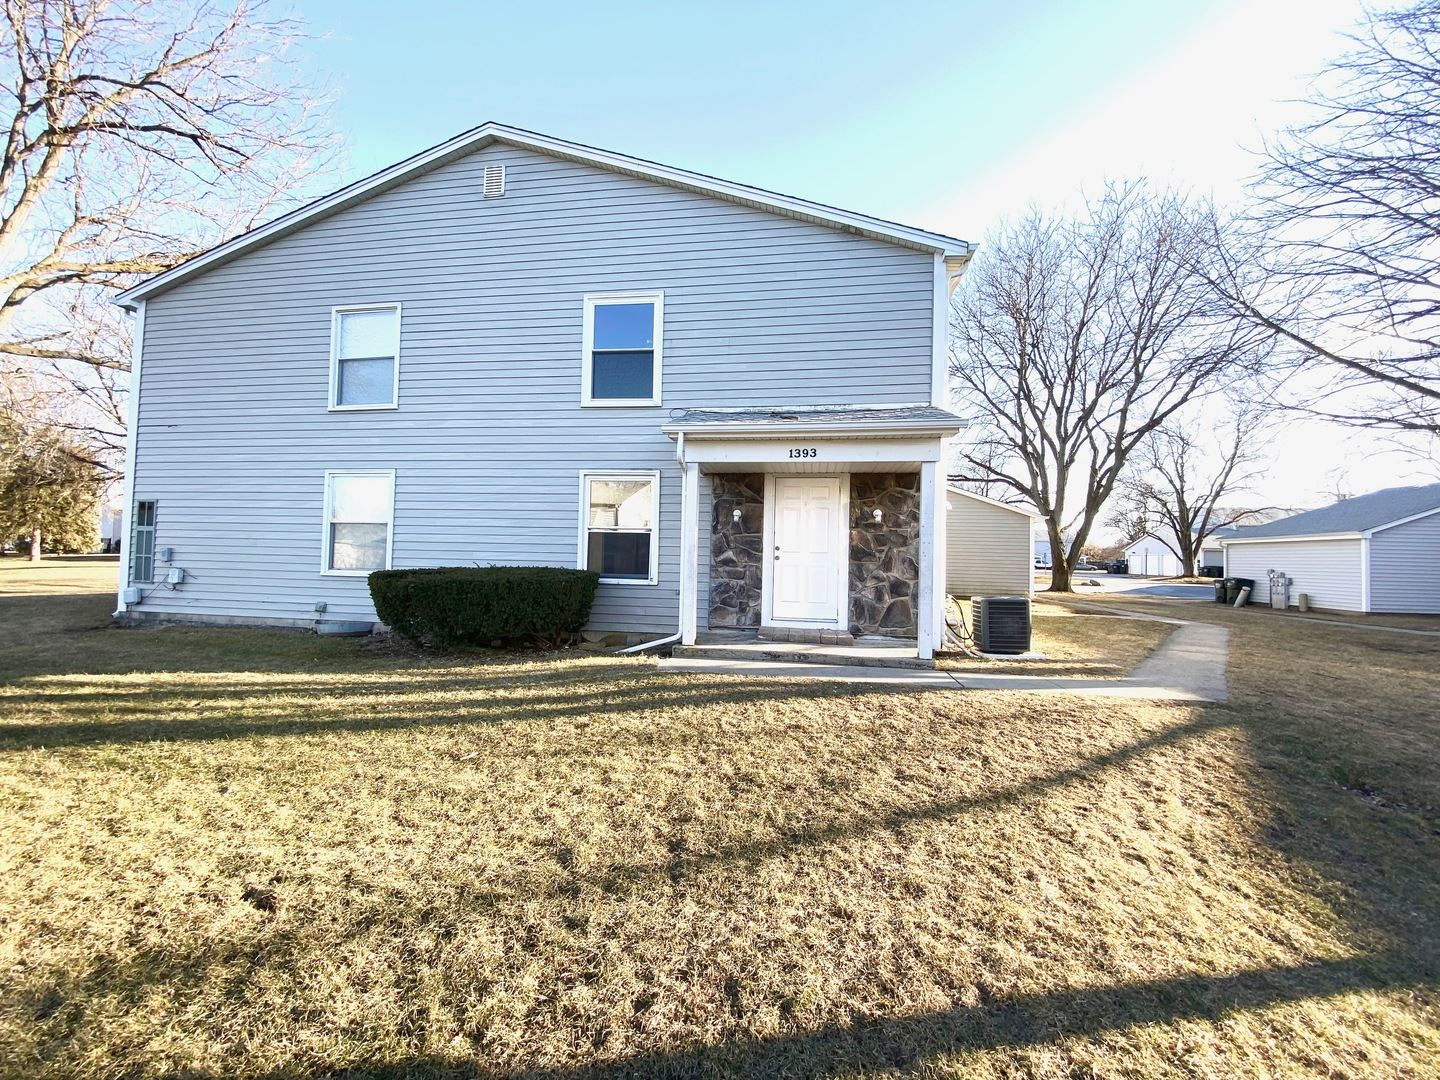 1393 S Glen Circle #B, Aurora, IL 60506 - MLS#: 10662807